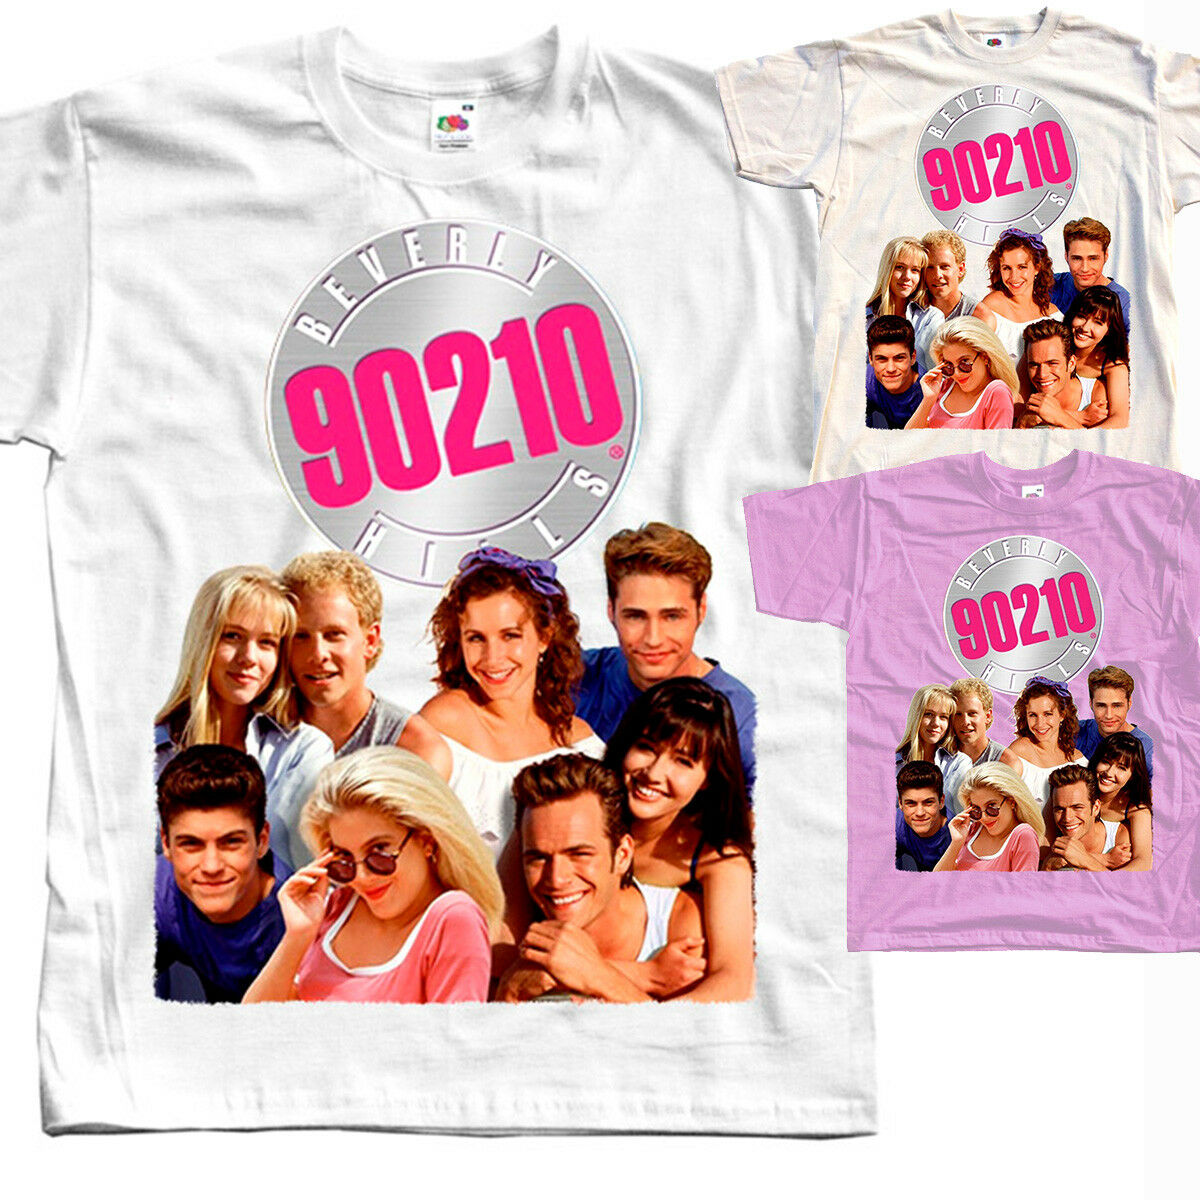 all sizes S to 5XL Jason Priestley WHITE,PINK,NATURAL Beverly Hills V4 T-SHIRT